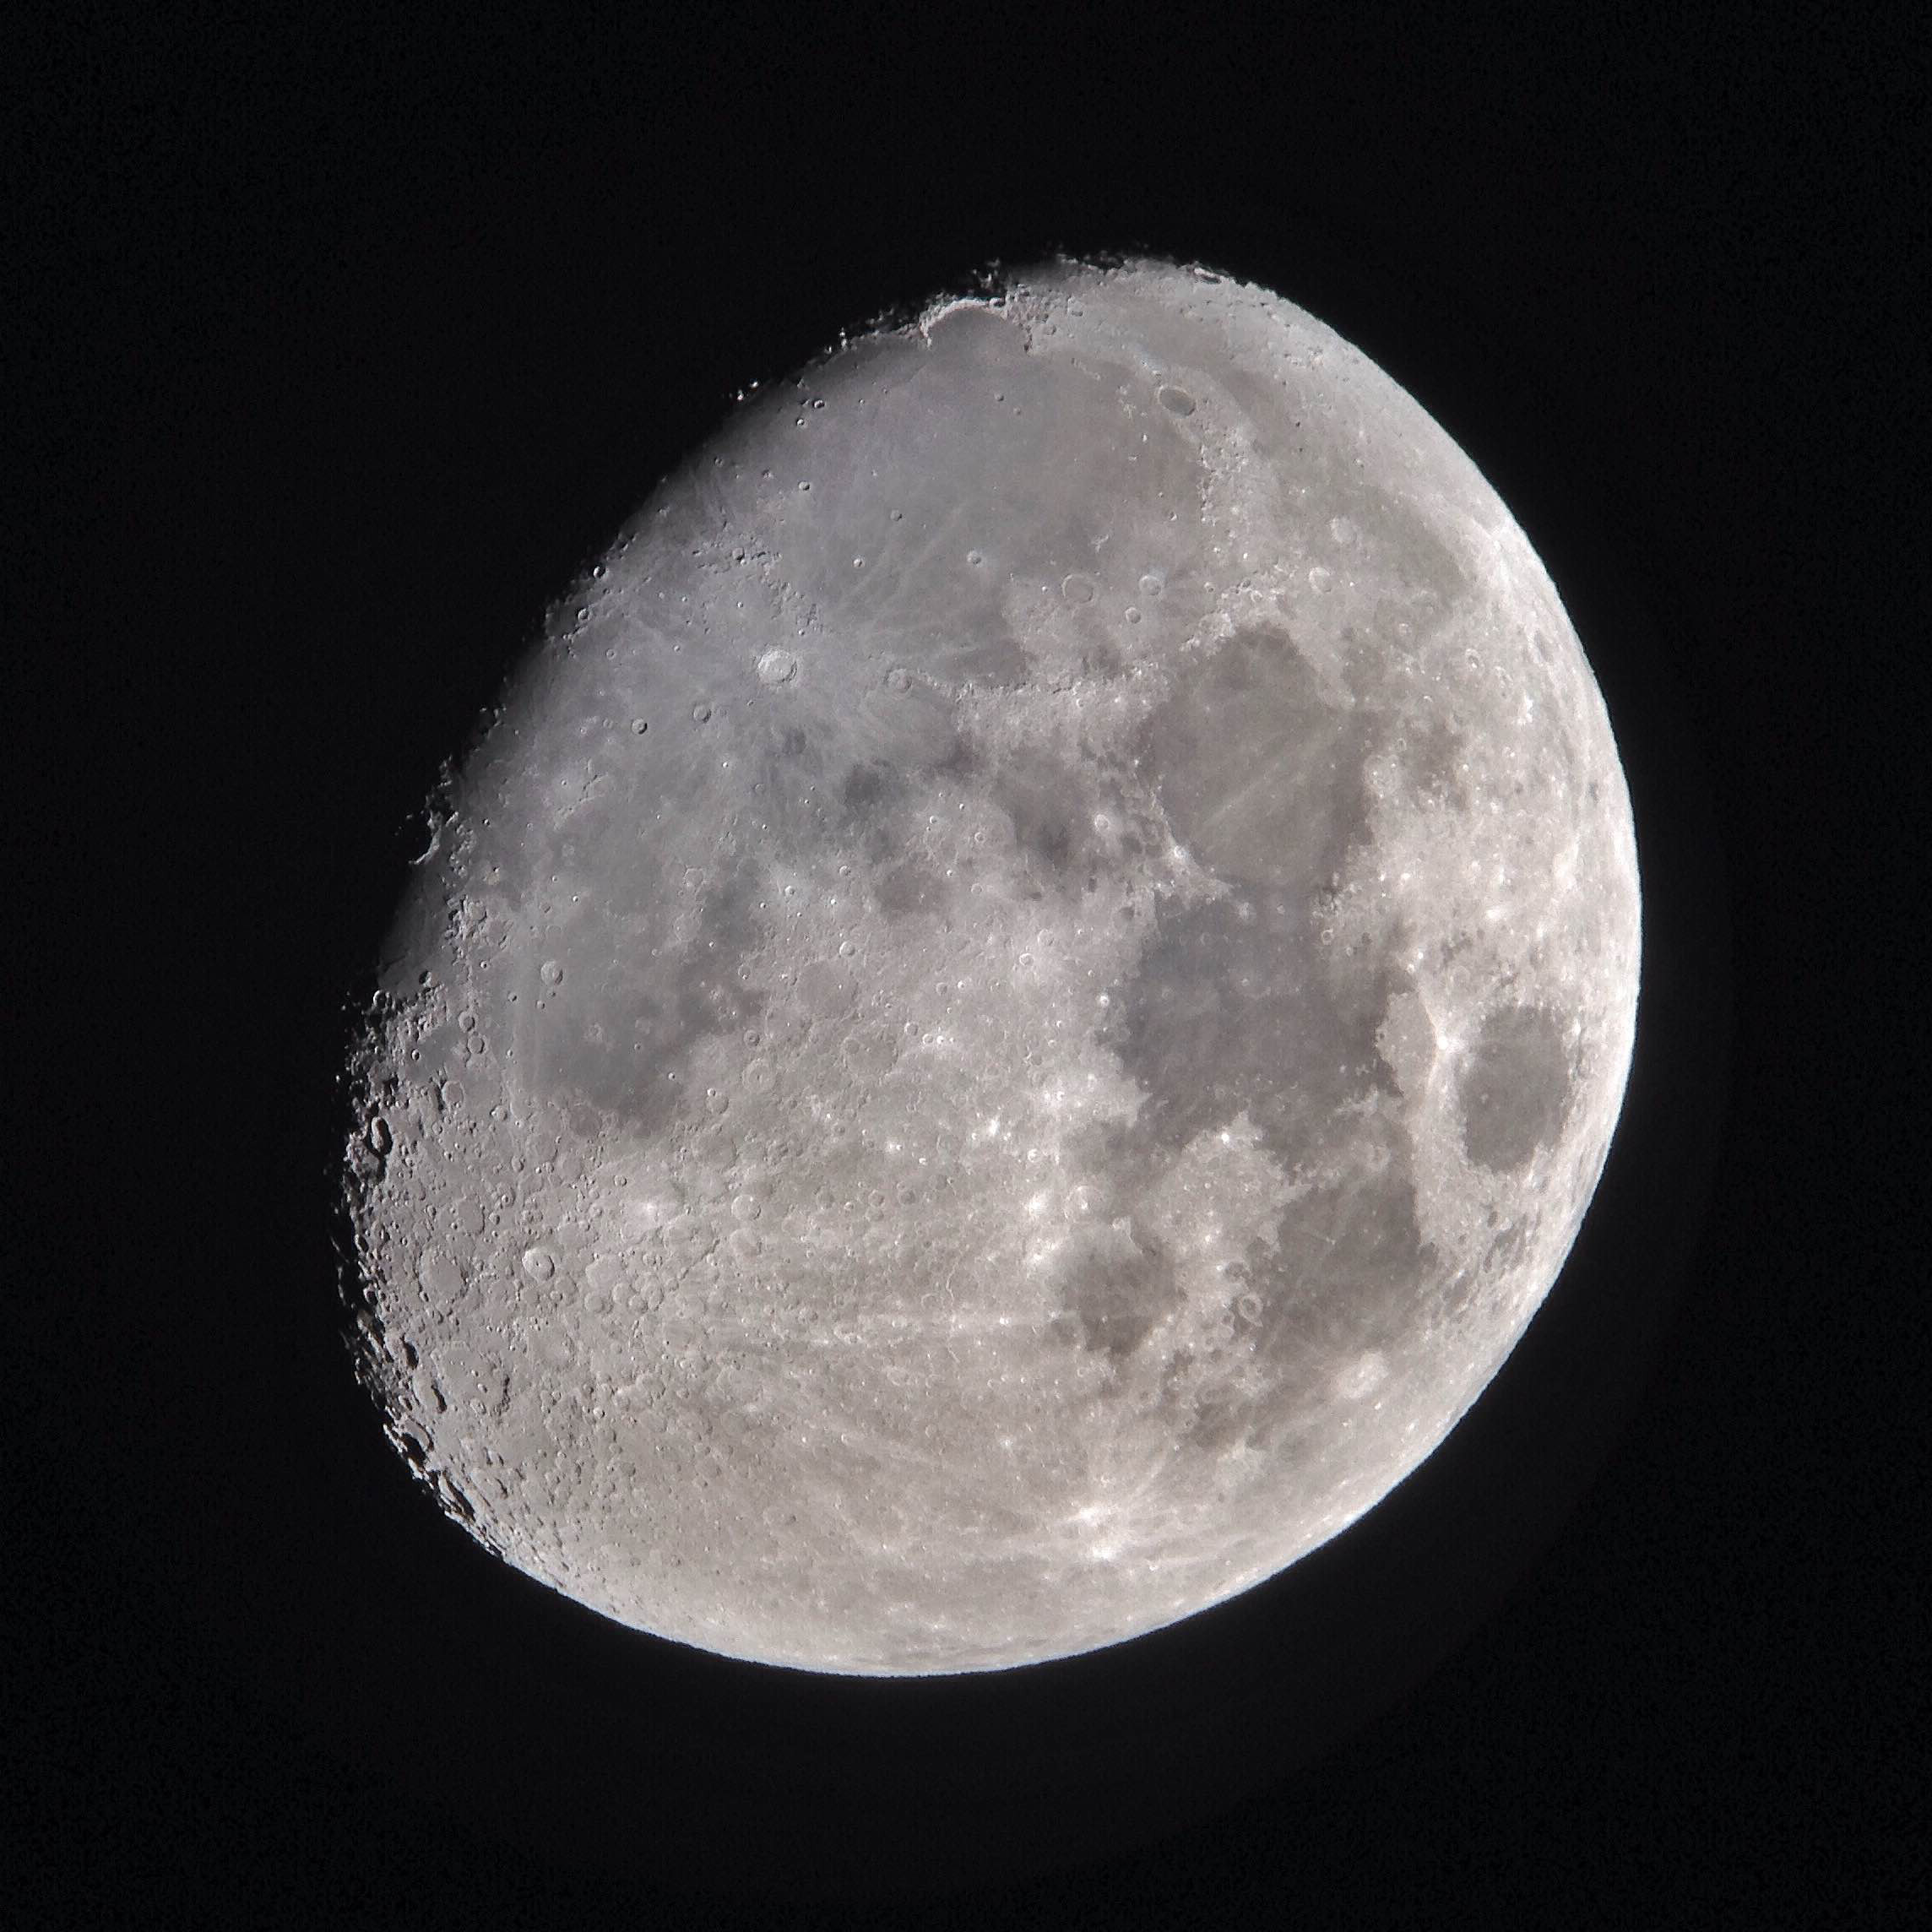 2014-11-02 waxing gibbous moon - snapseed